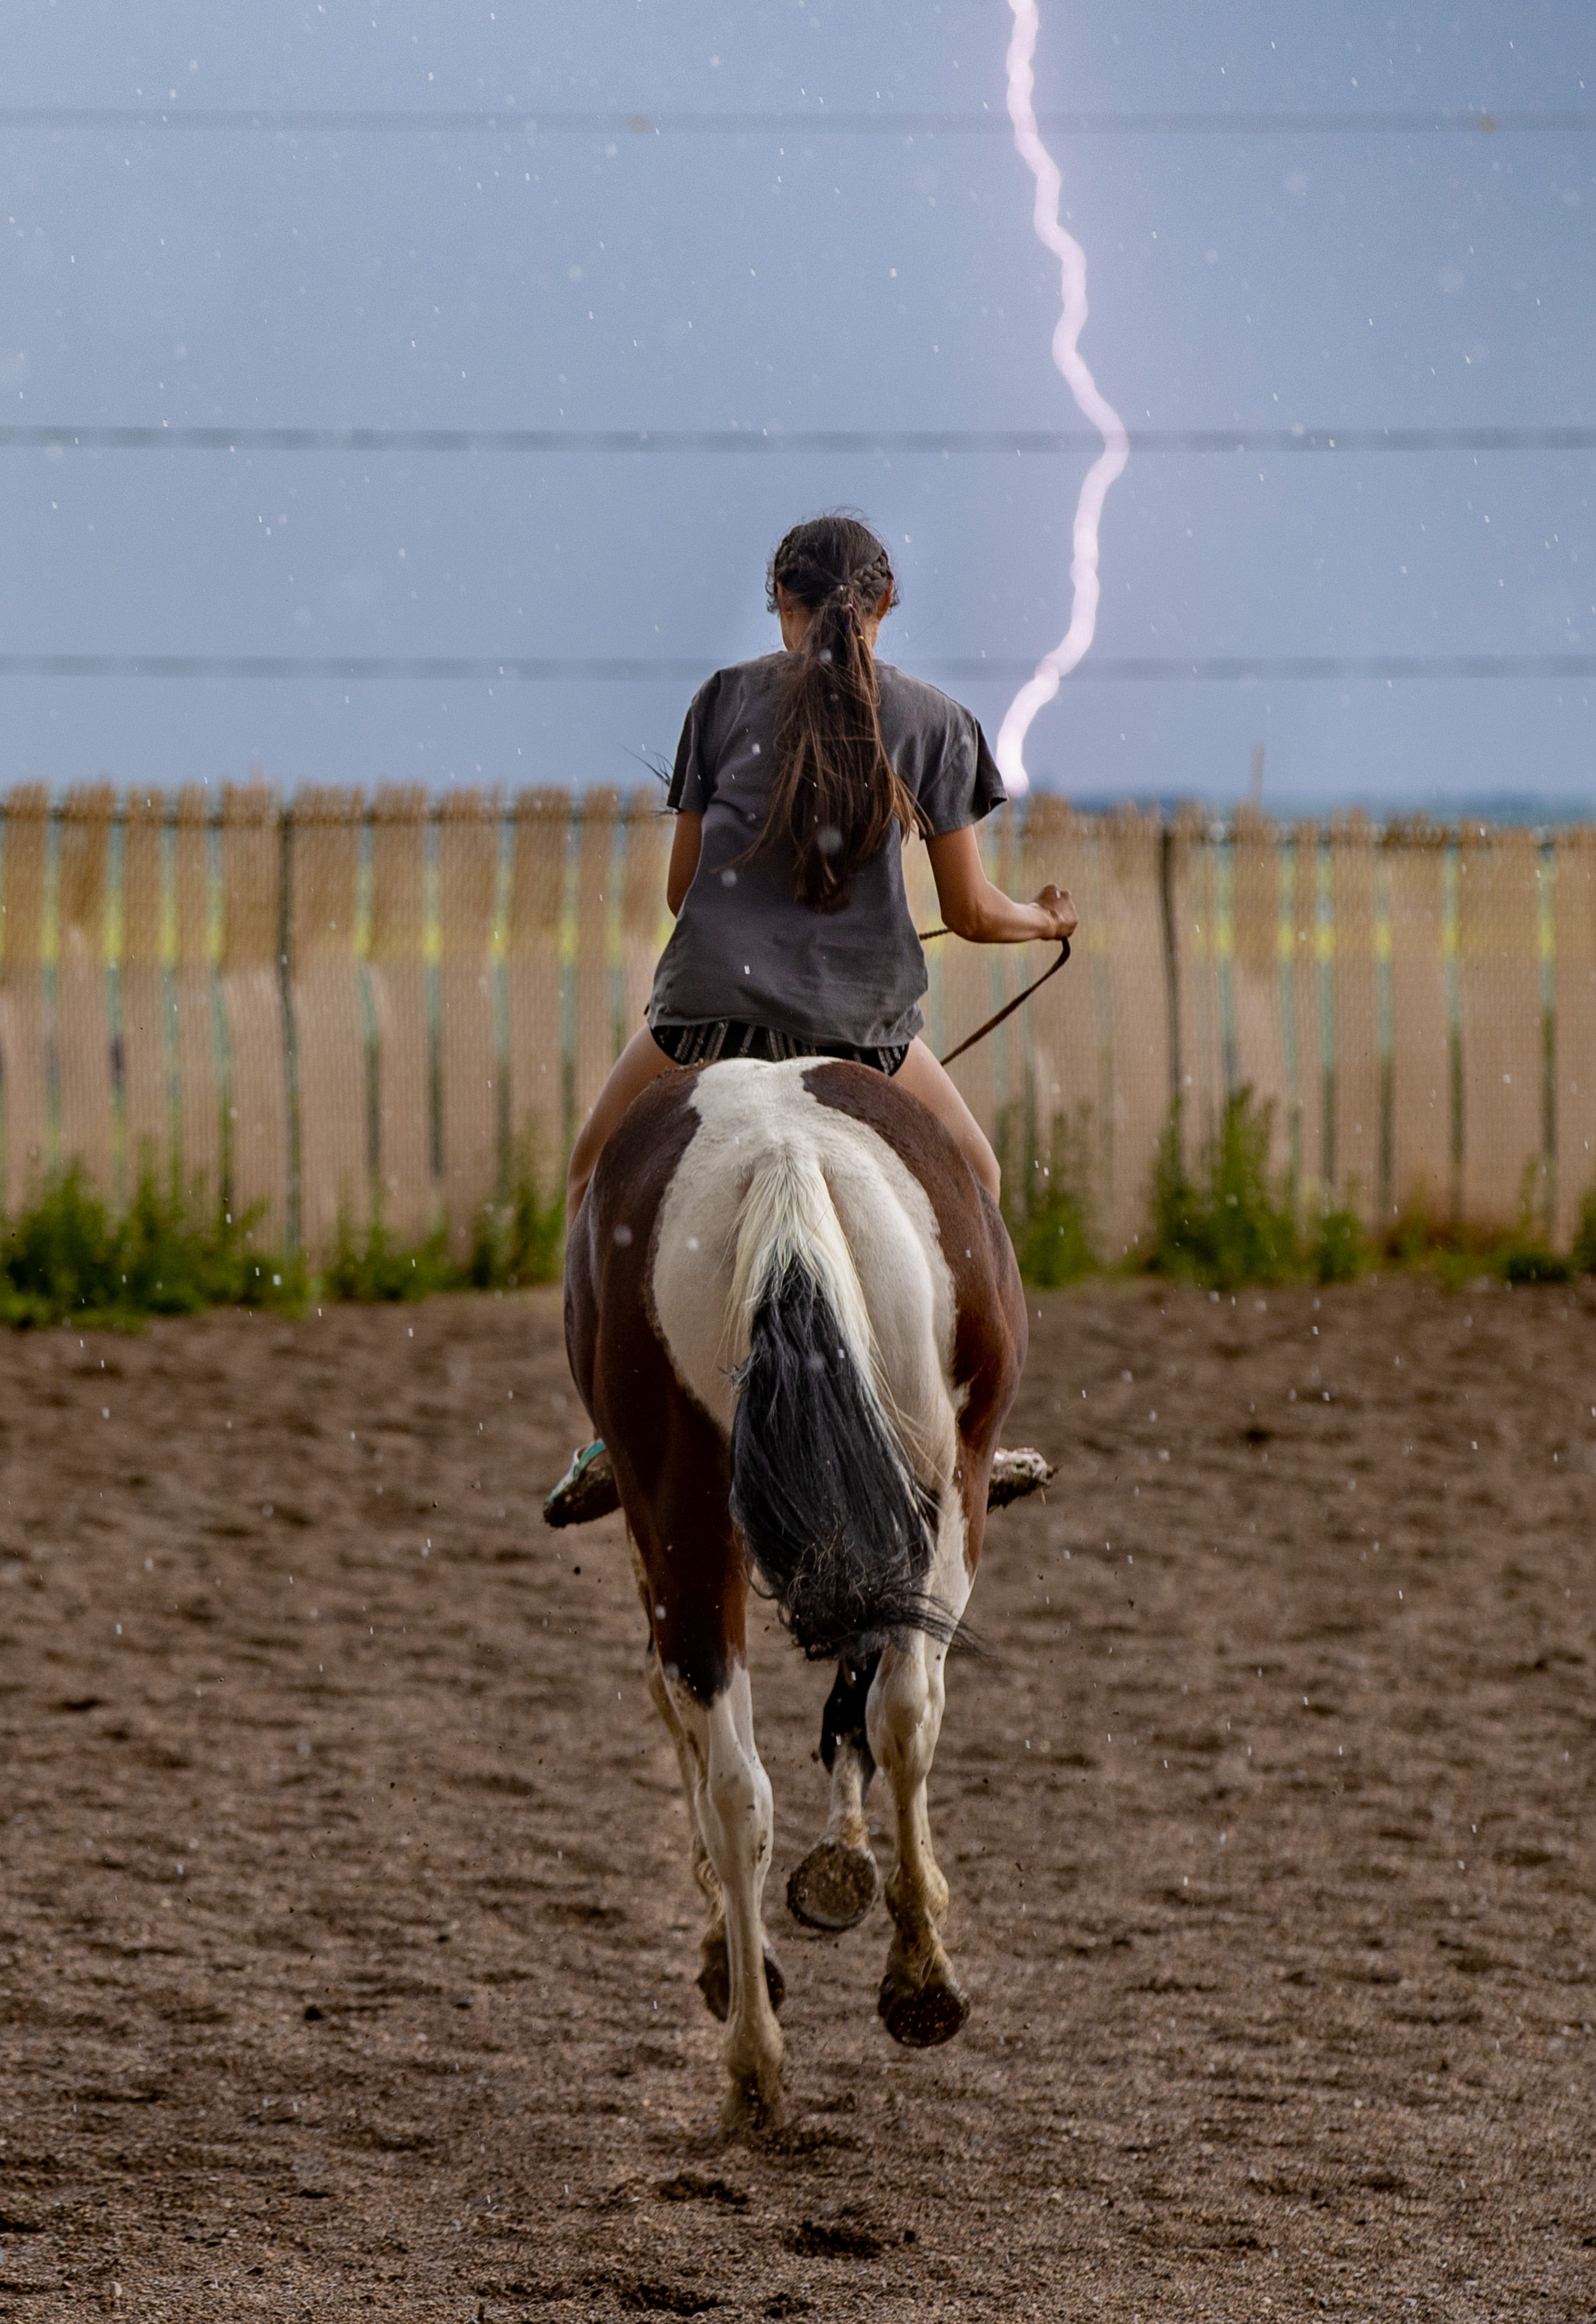 Lightning strikes as a young rider takes off on a horse at the Parshall Lucky-Mound Rodeo as a storm rolls in across the plains. June 26, 2021